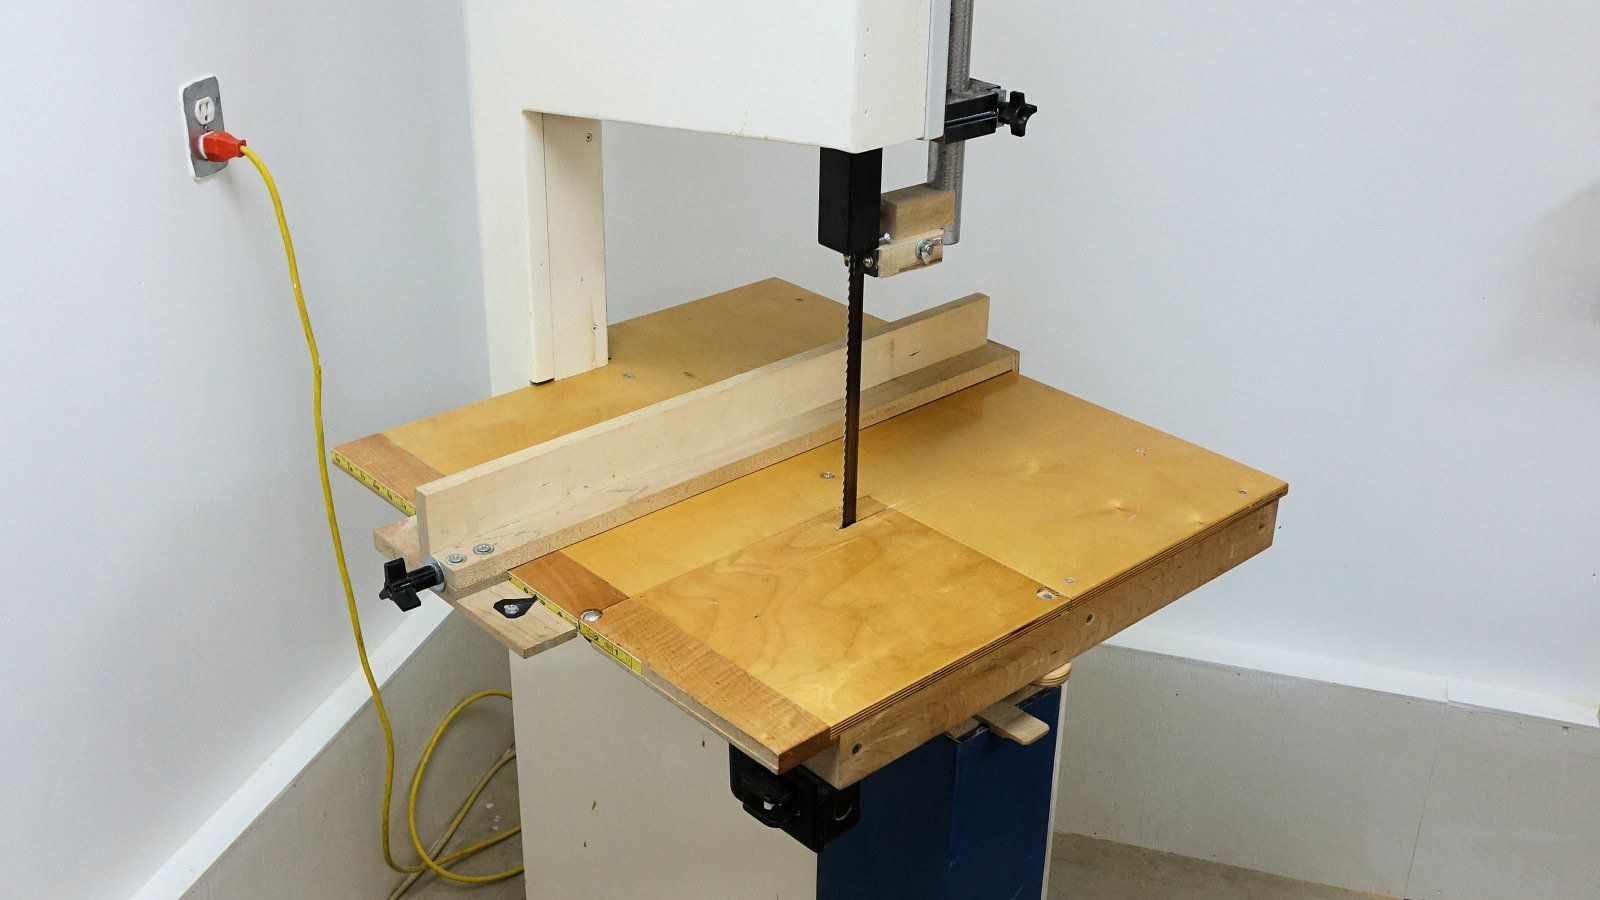 How to build a woodworking band saw Bandsaw, Table saw